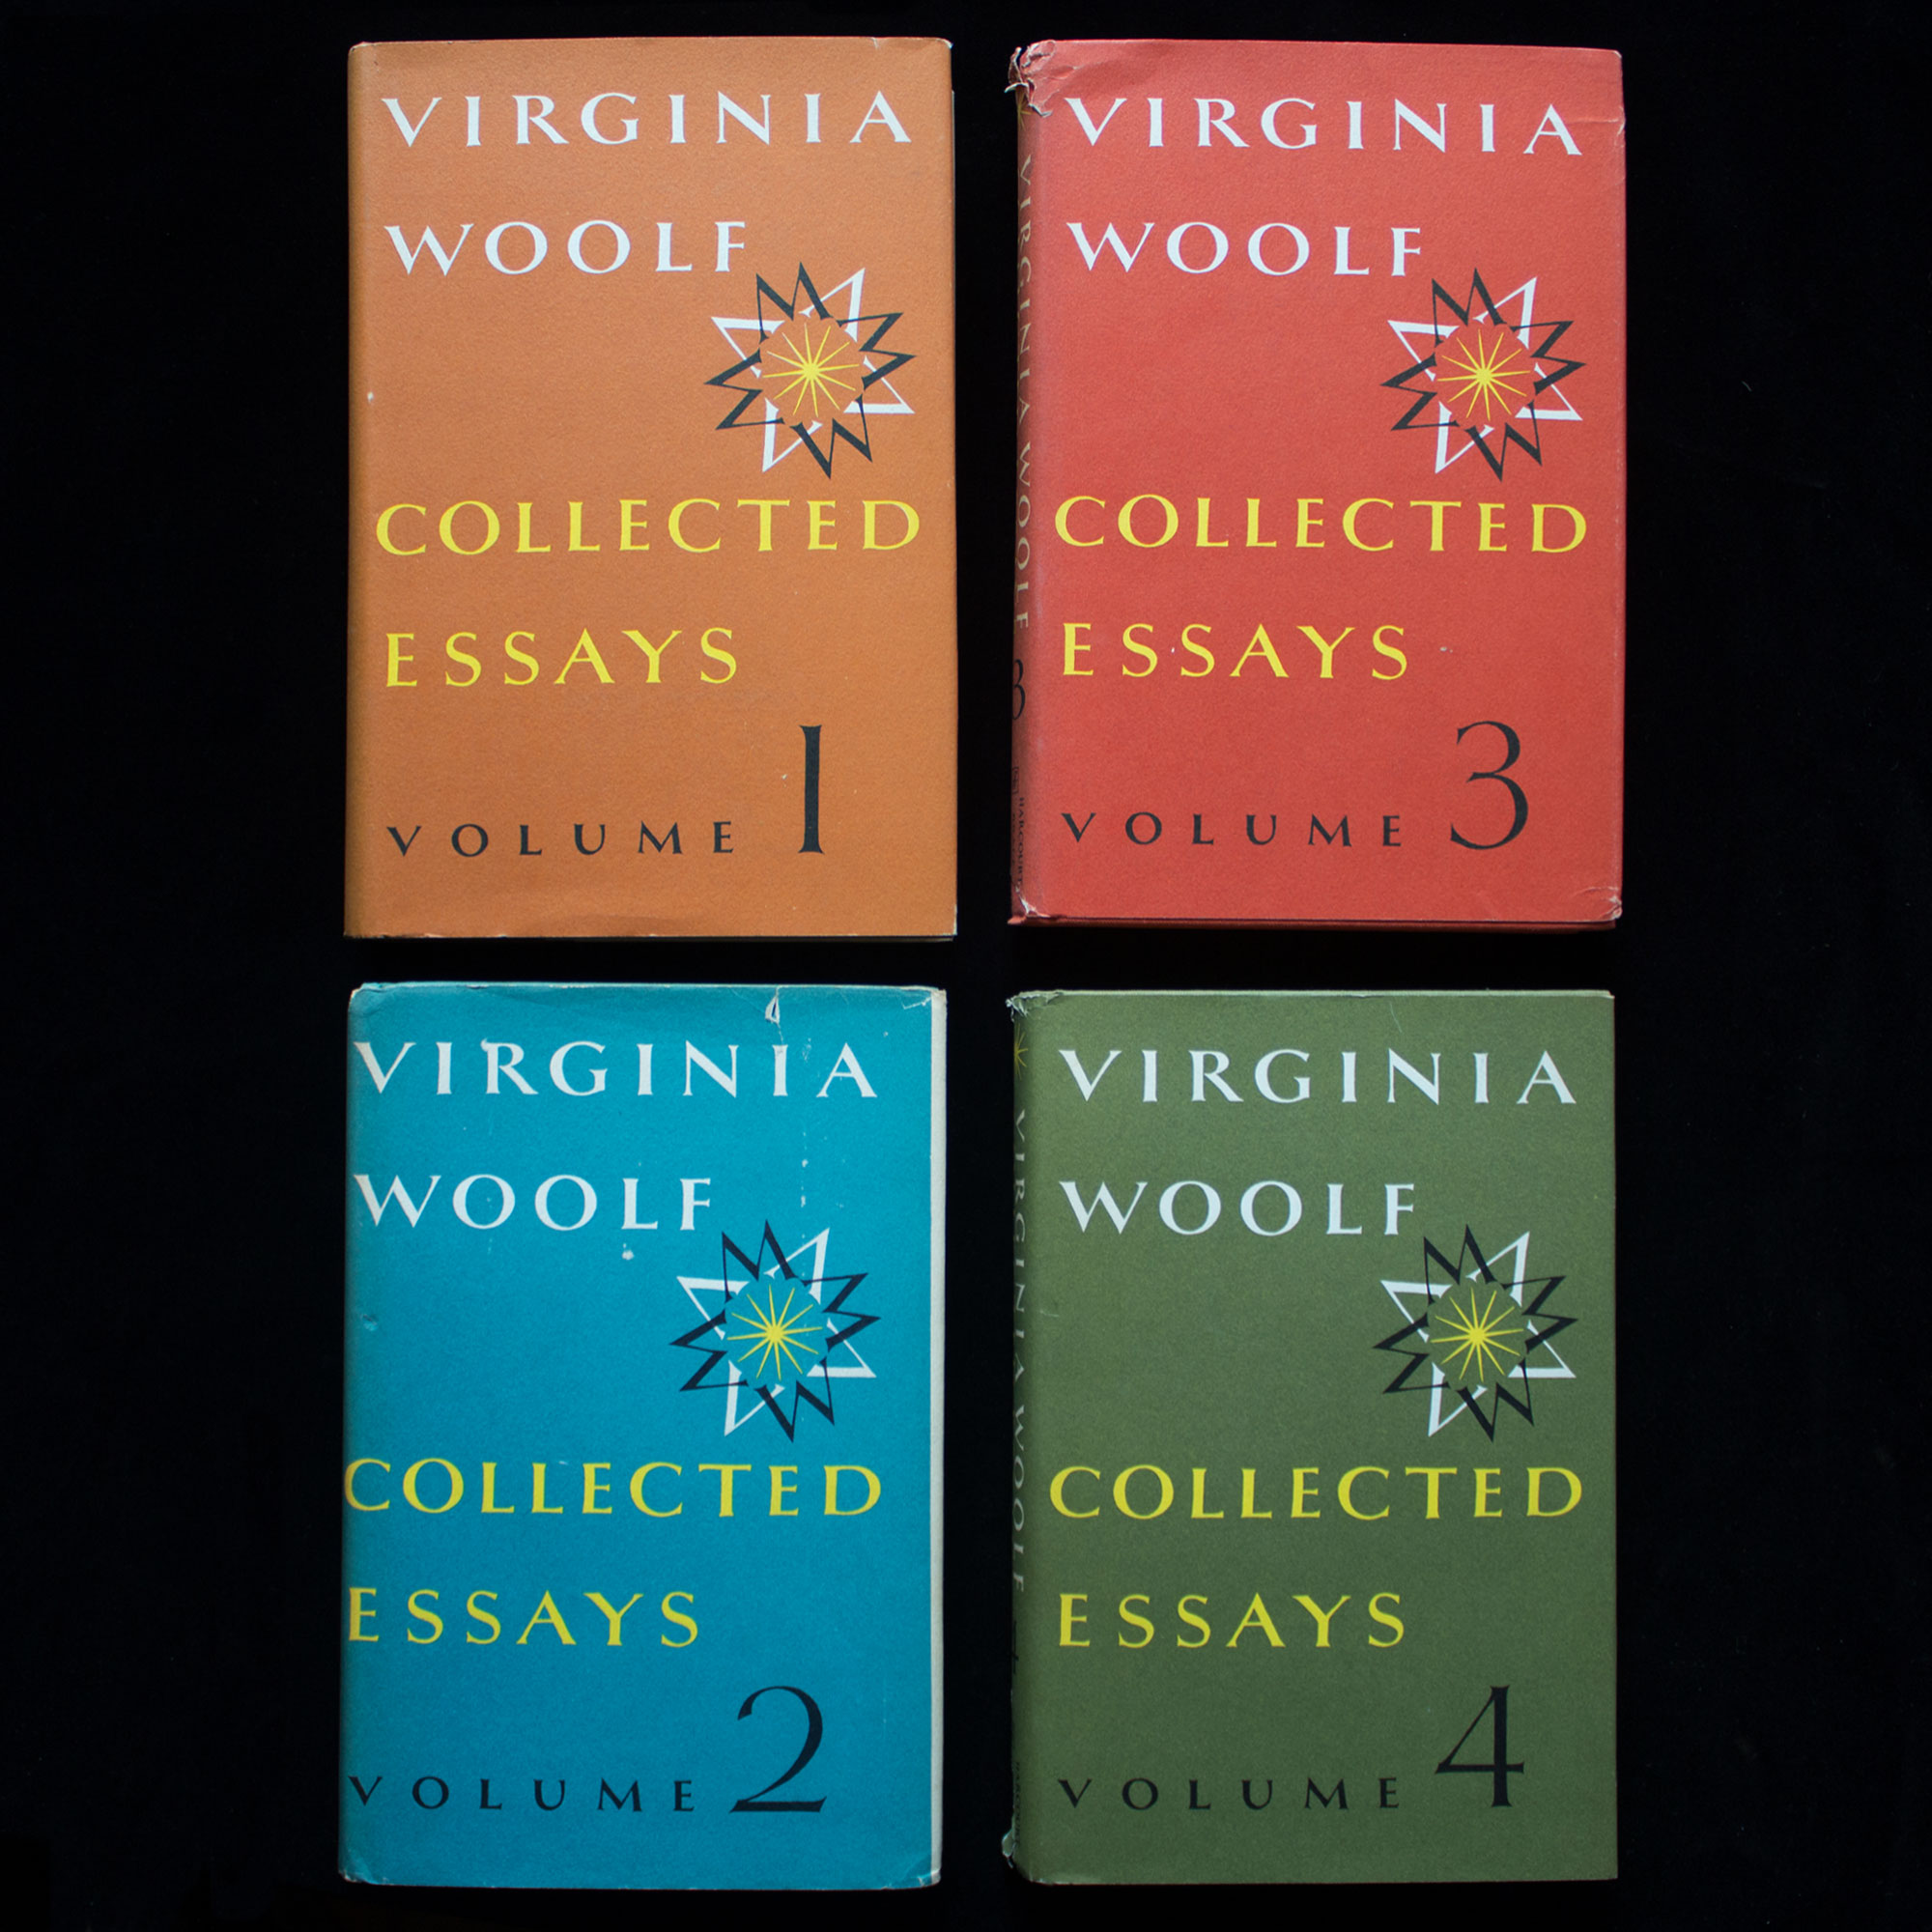 Virginia woolf collected essays